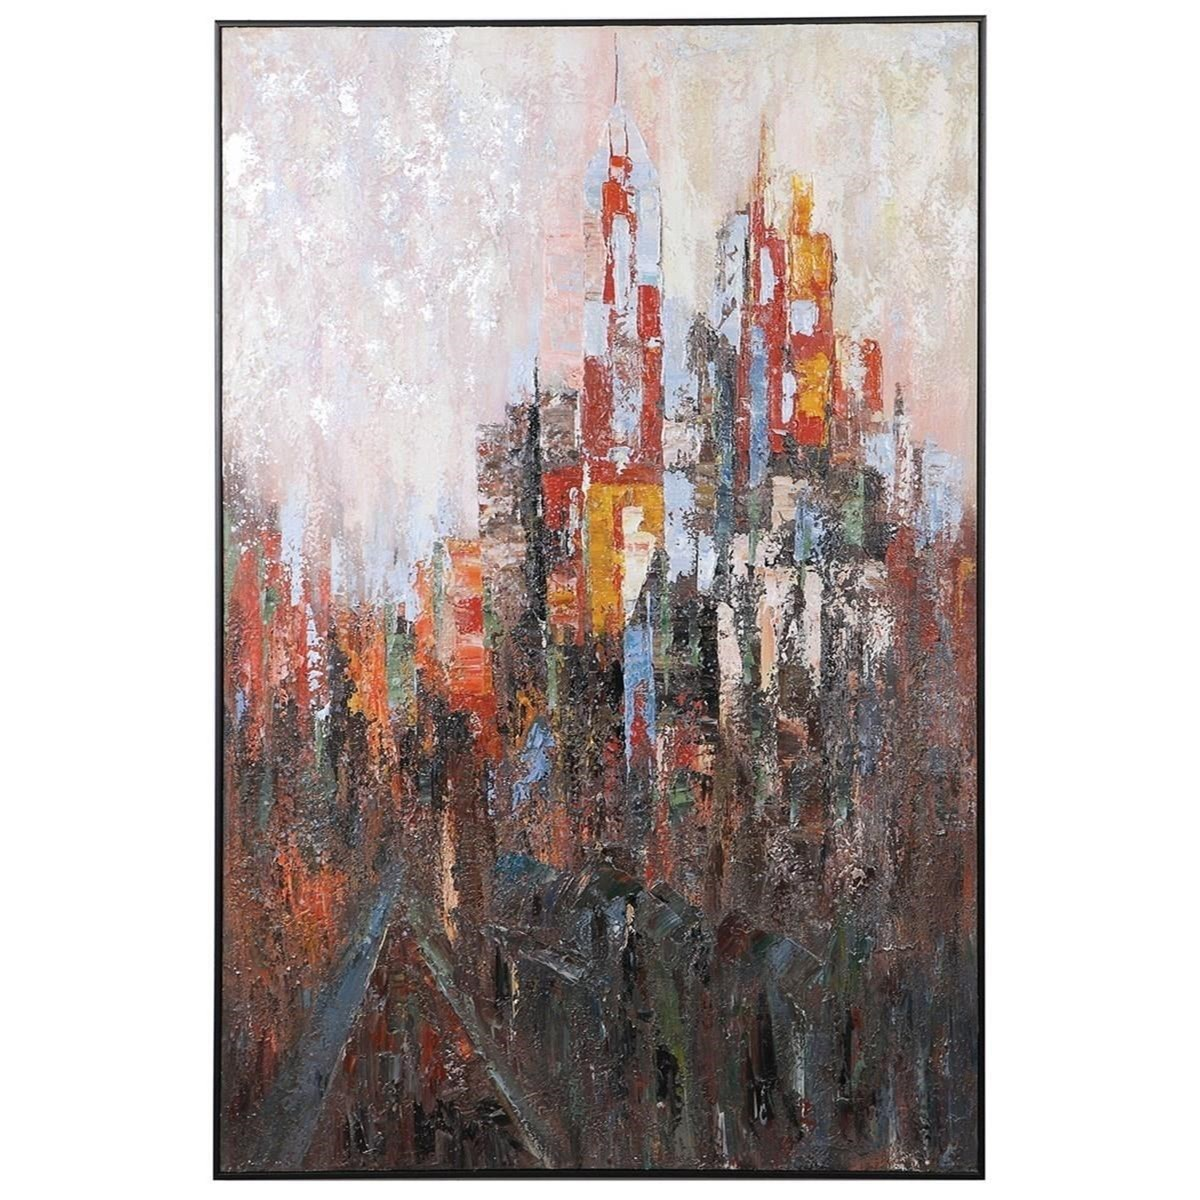 Art Concrete Jungle Hand Painted Canvas by Uttermost at Upper Room Home Furnishings